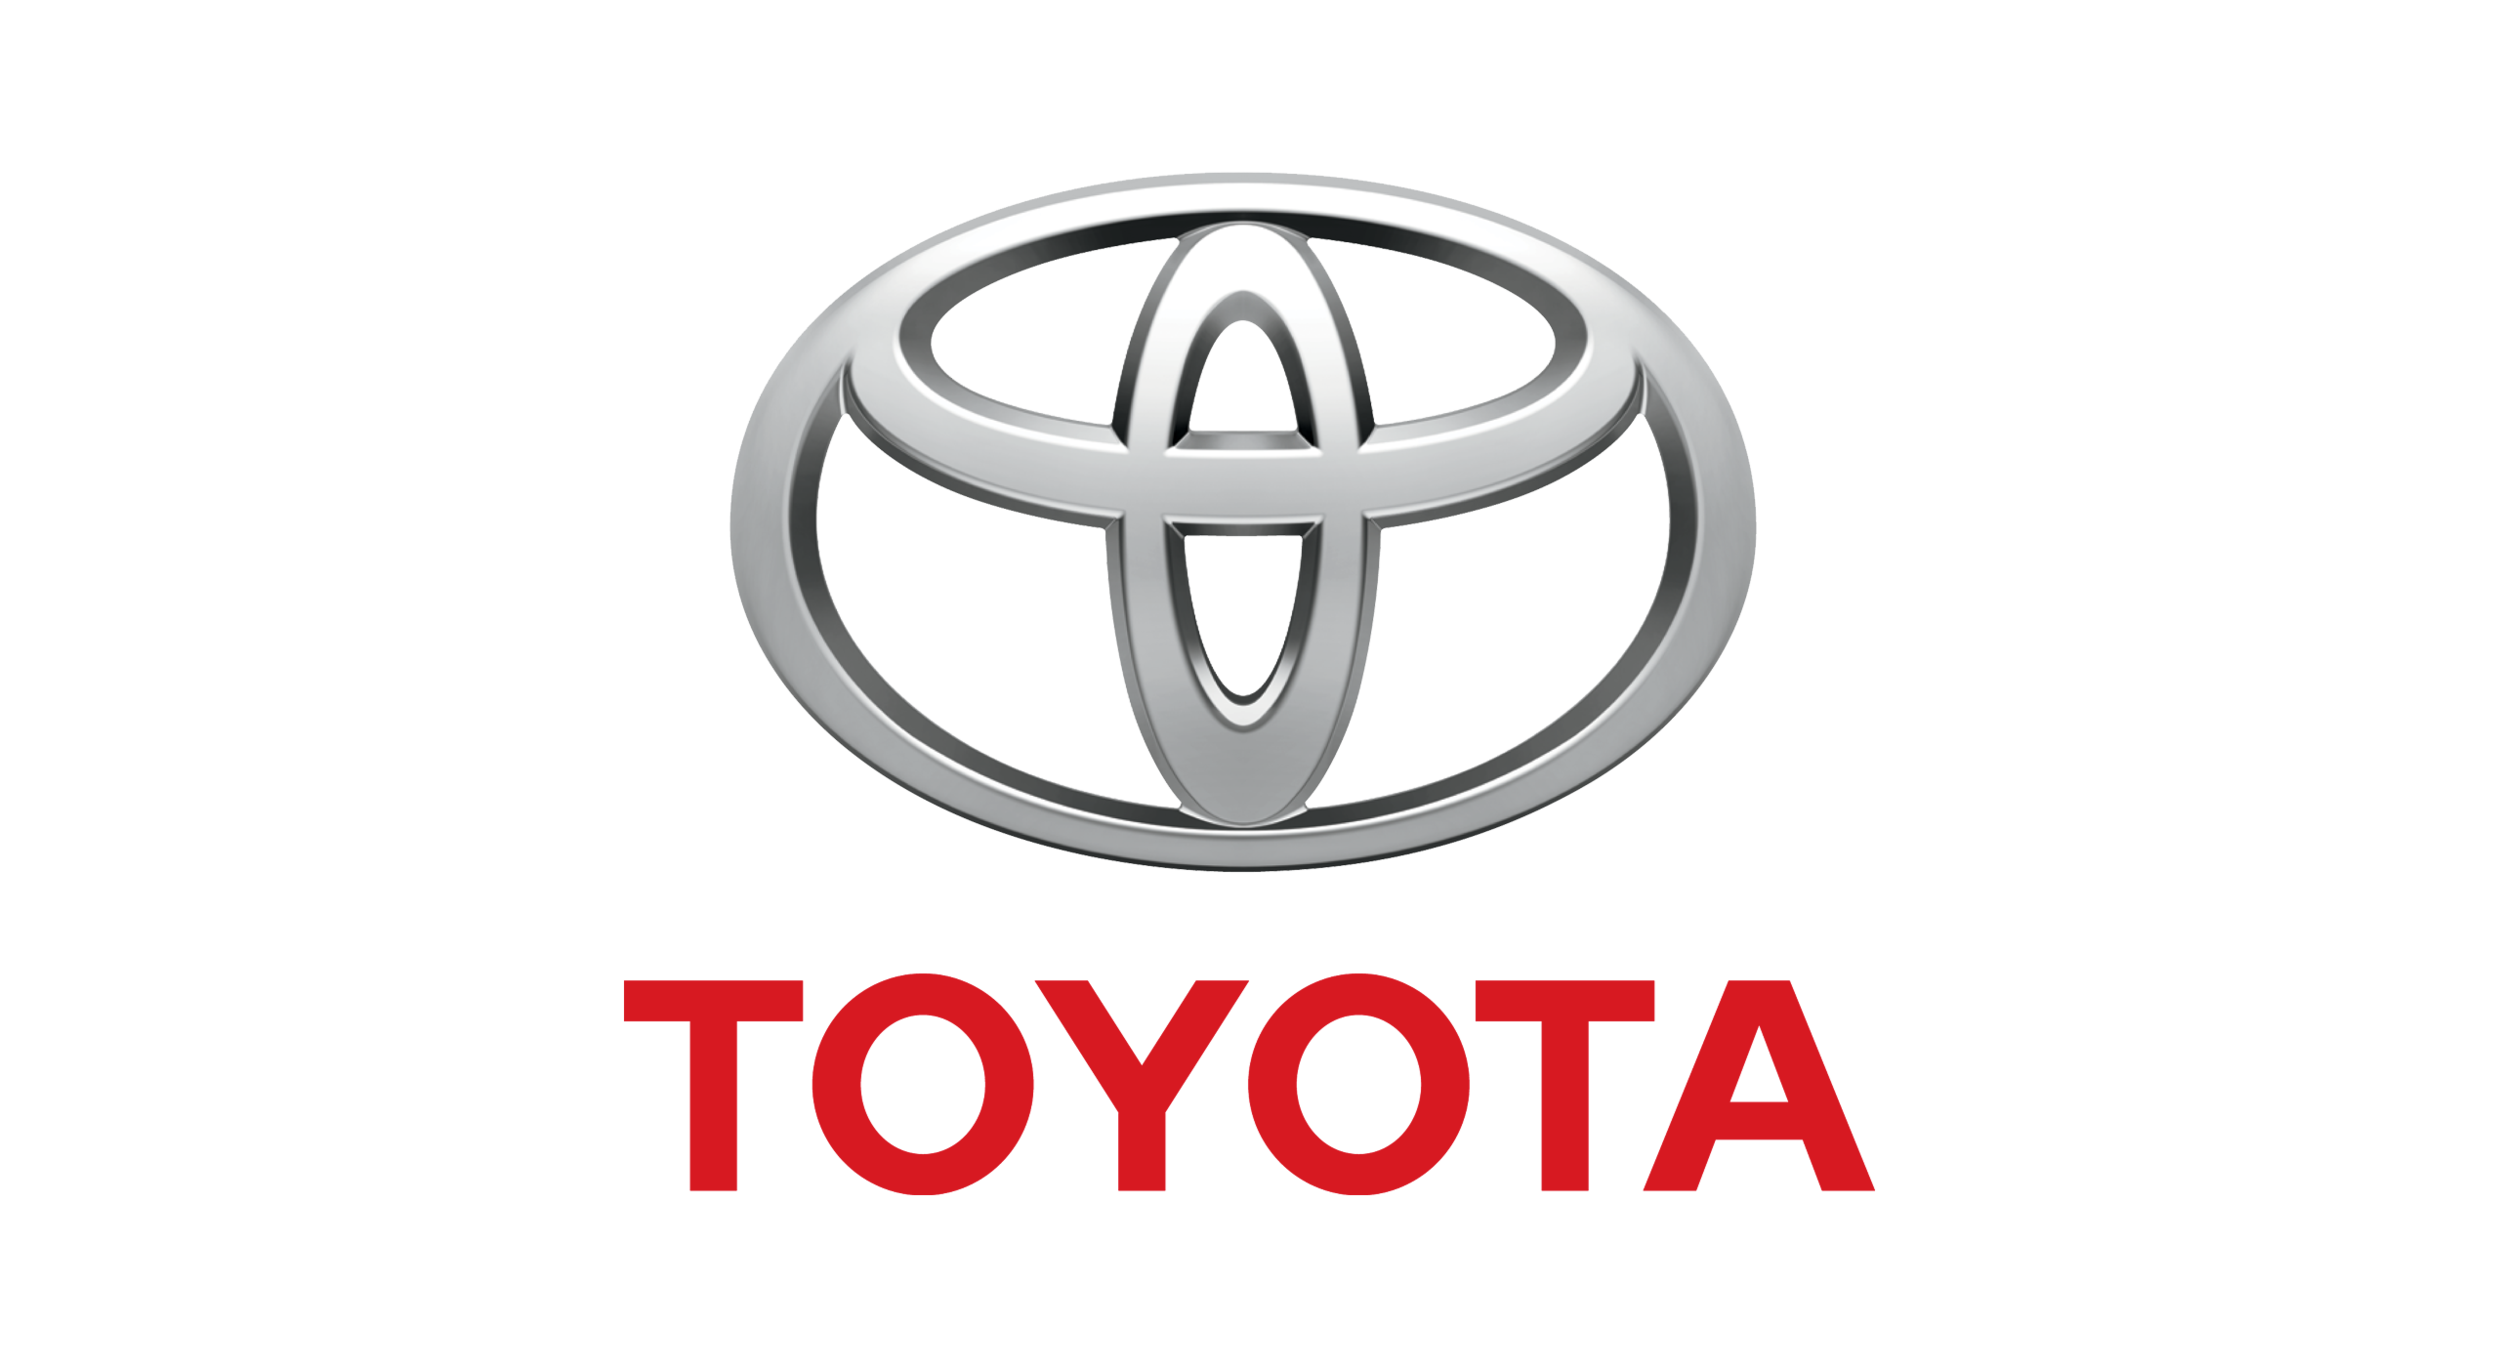 toyota-logo-transparent-background-wallpaper-8.jpg